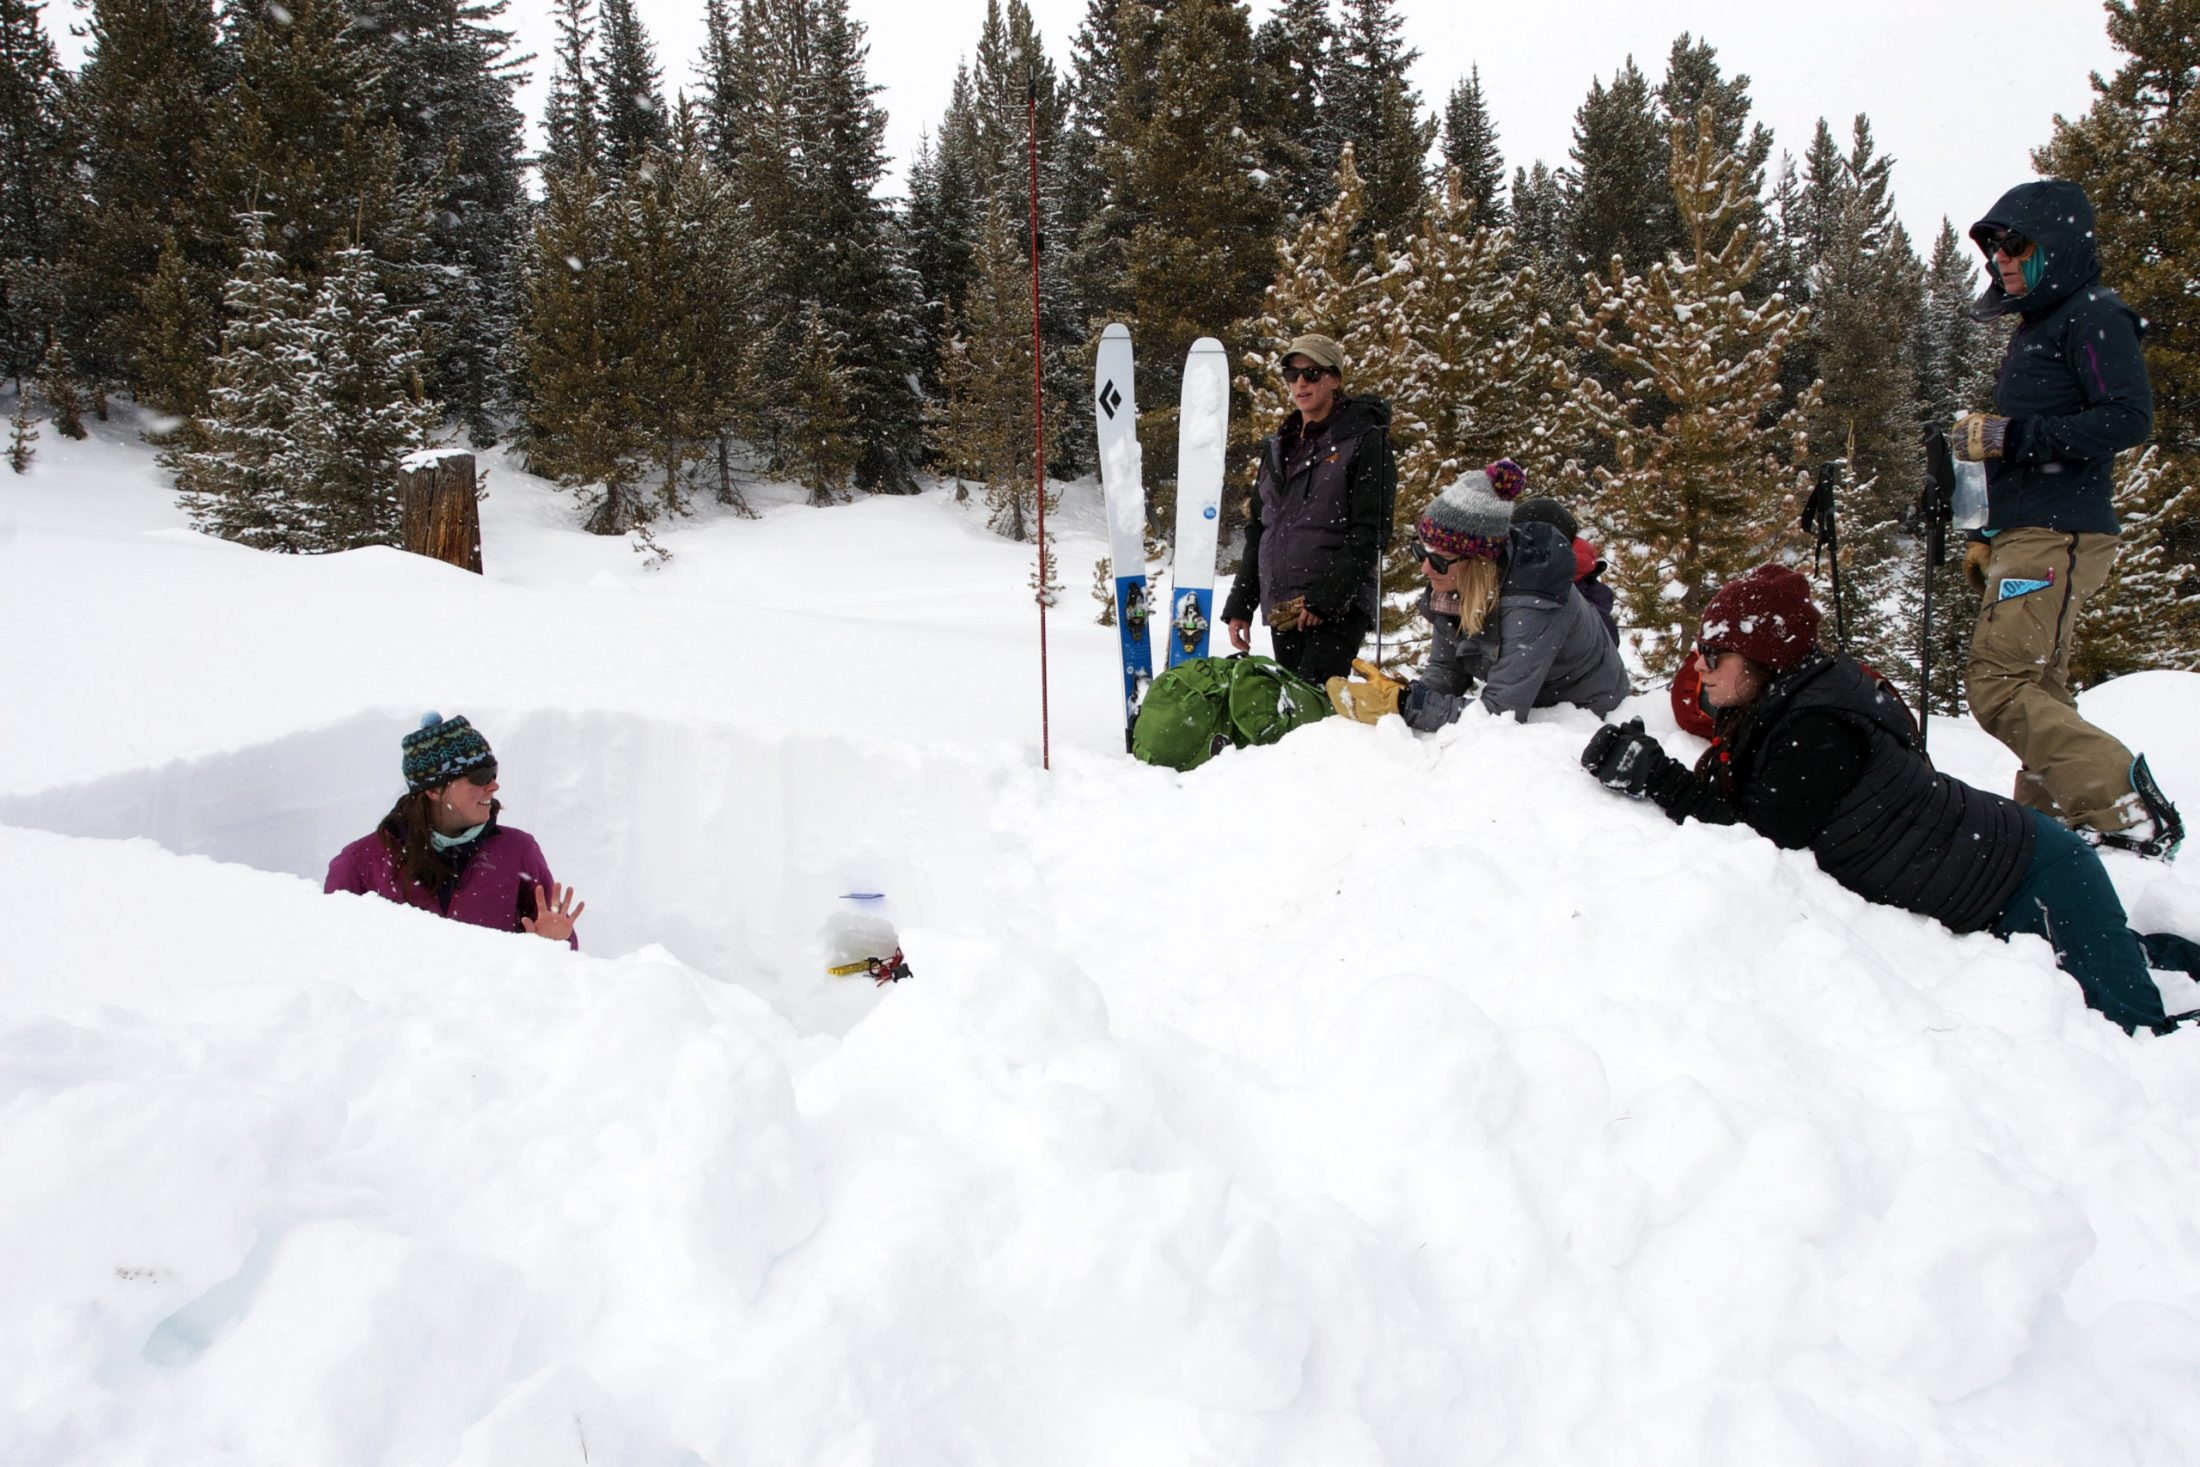 How Do I Become a Lead AIARE Avalanche Instructor?